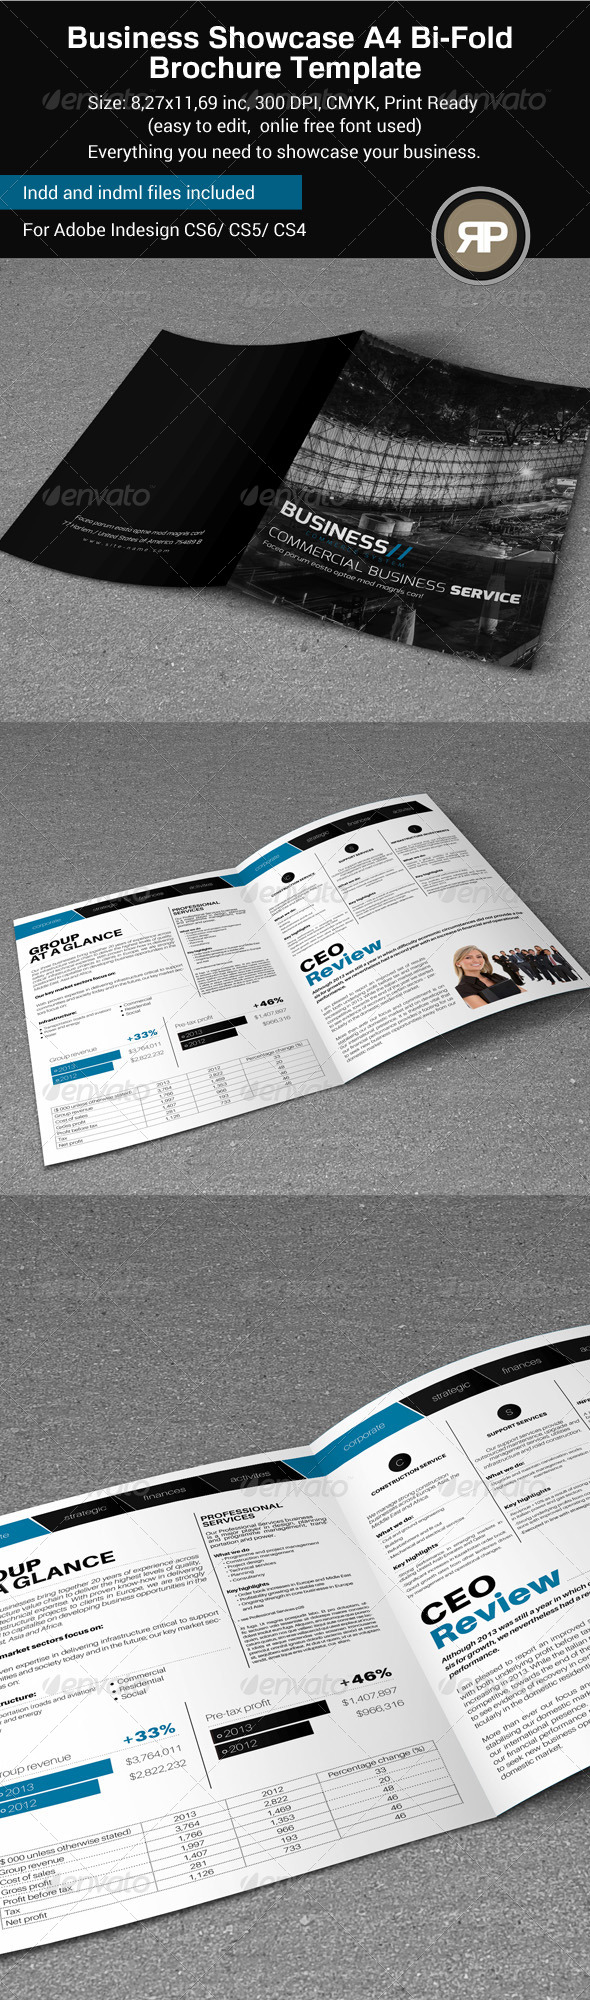 GraphicRiver Business Showcase A4 Bi-Fold Brochure 8190185